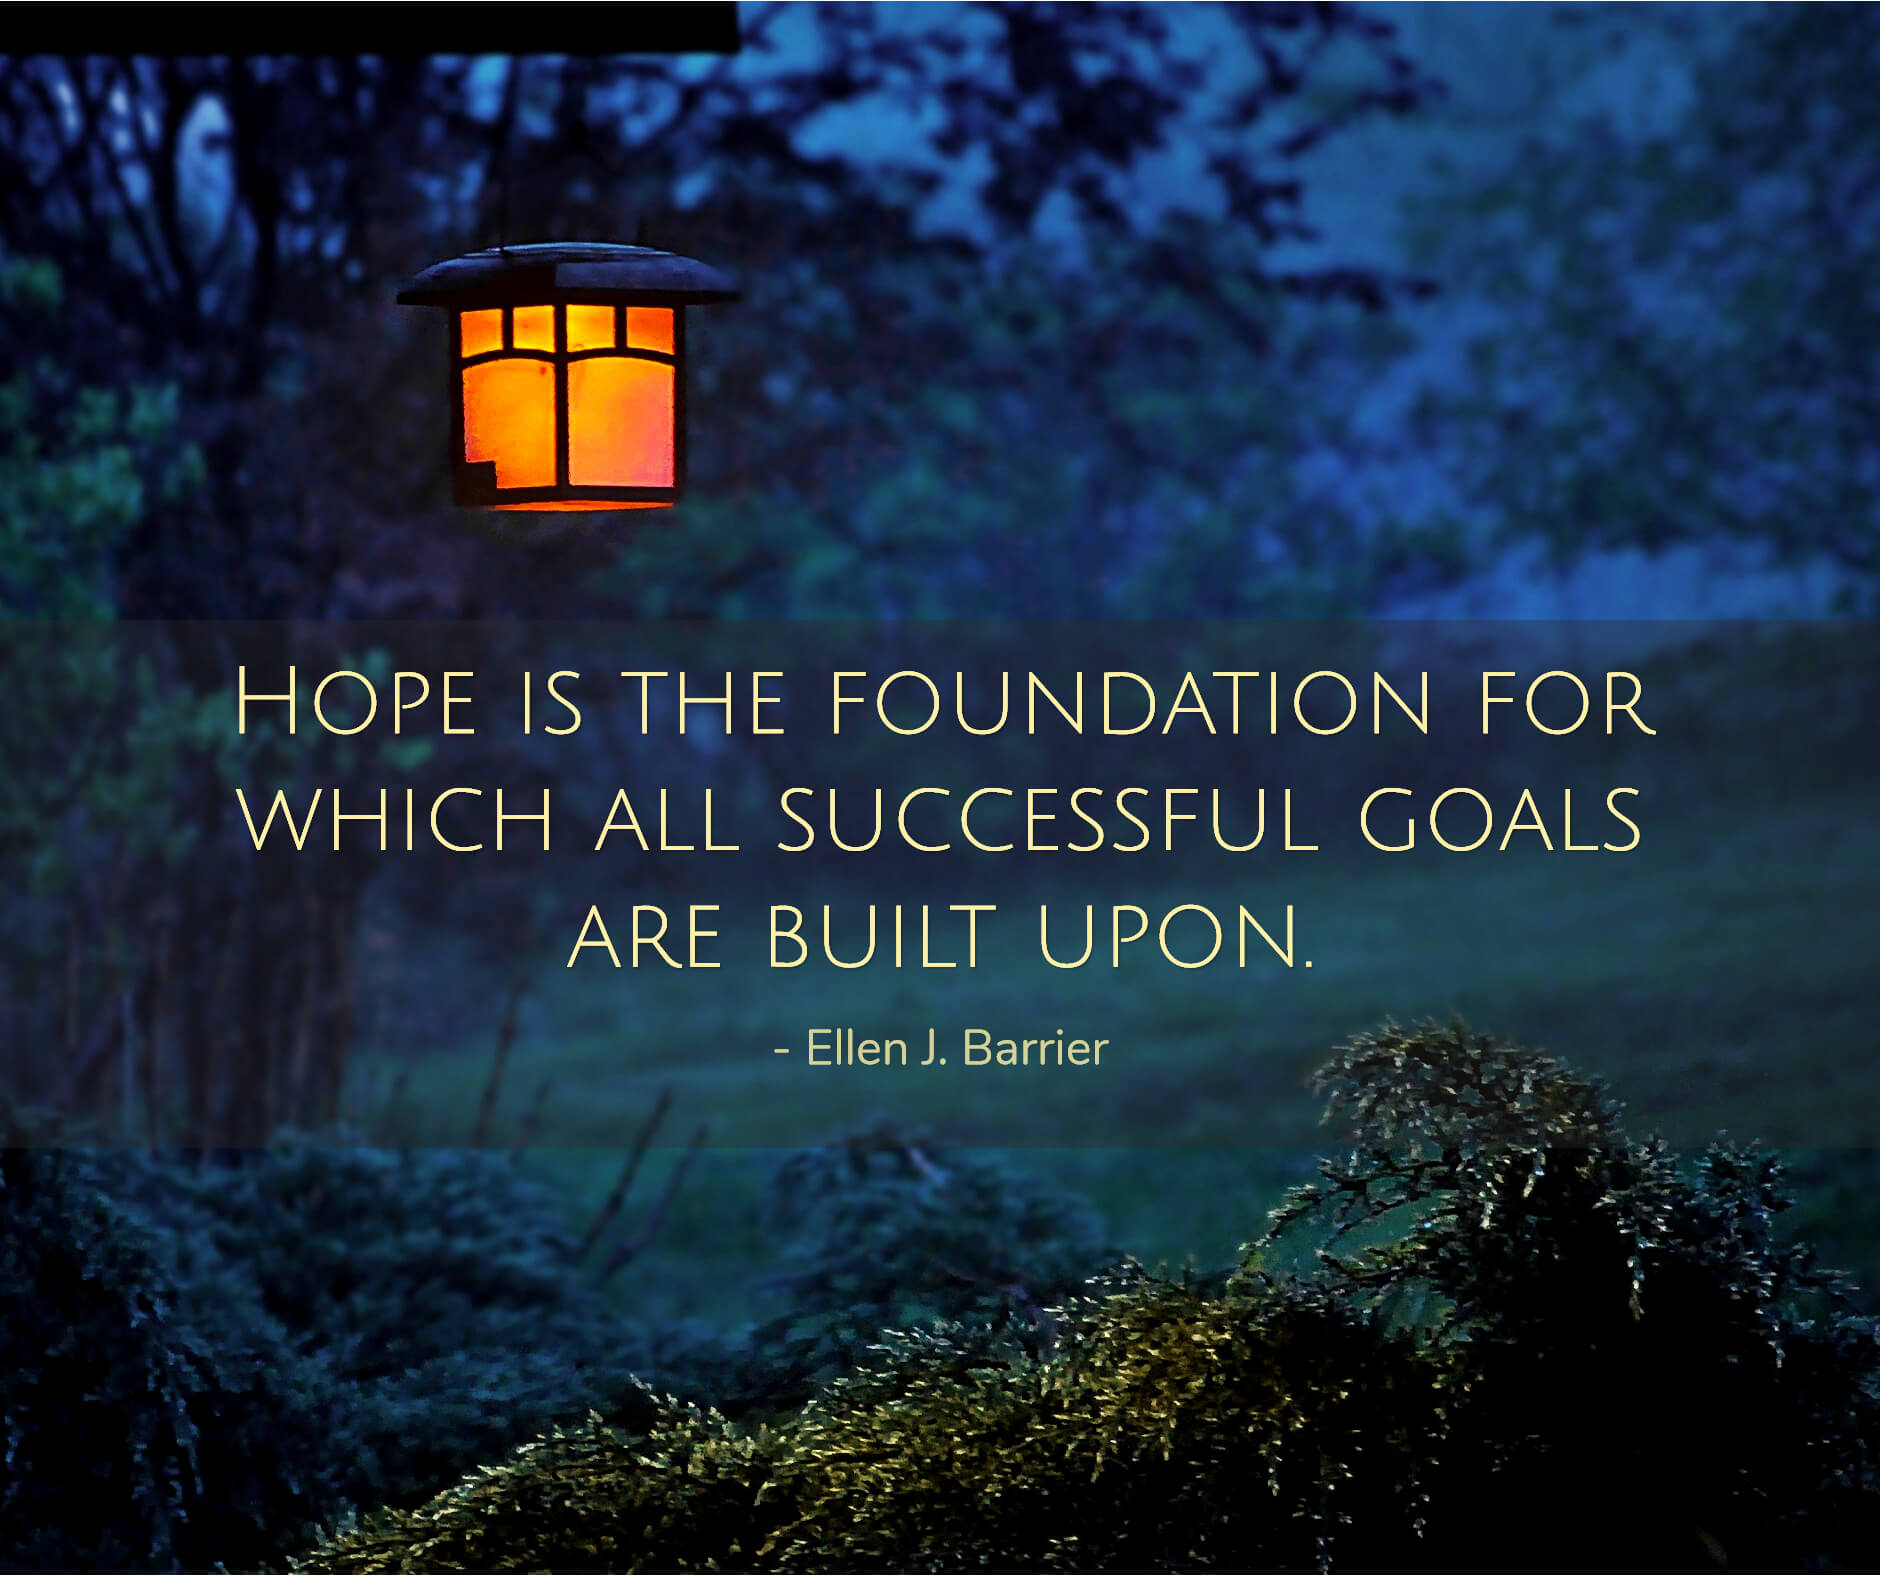 Hope is the foundation for which all successful goals are built upon.